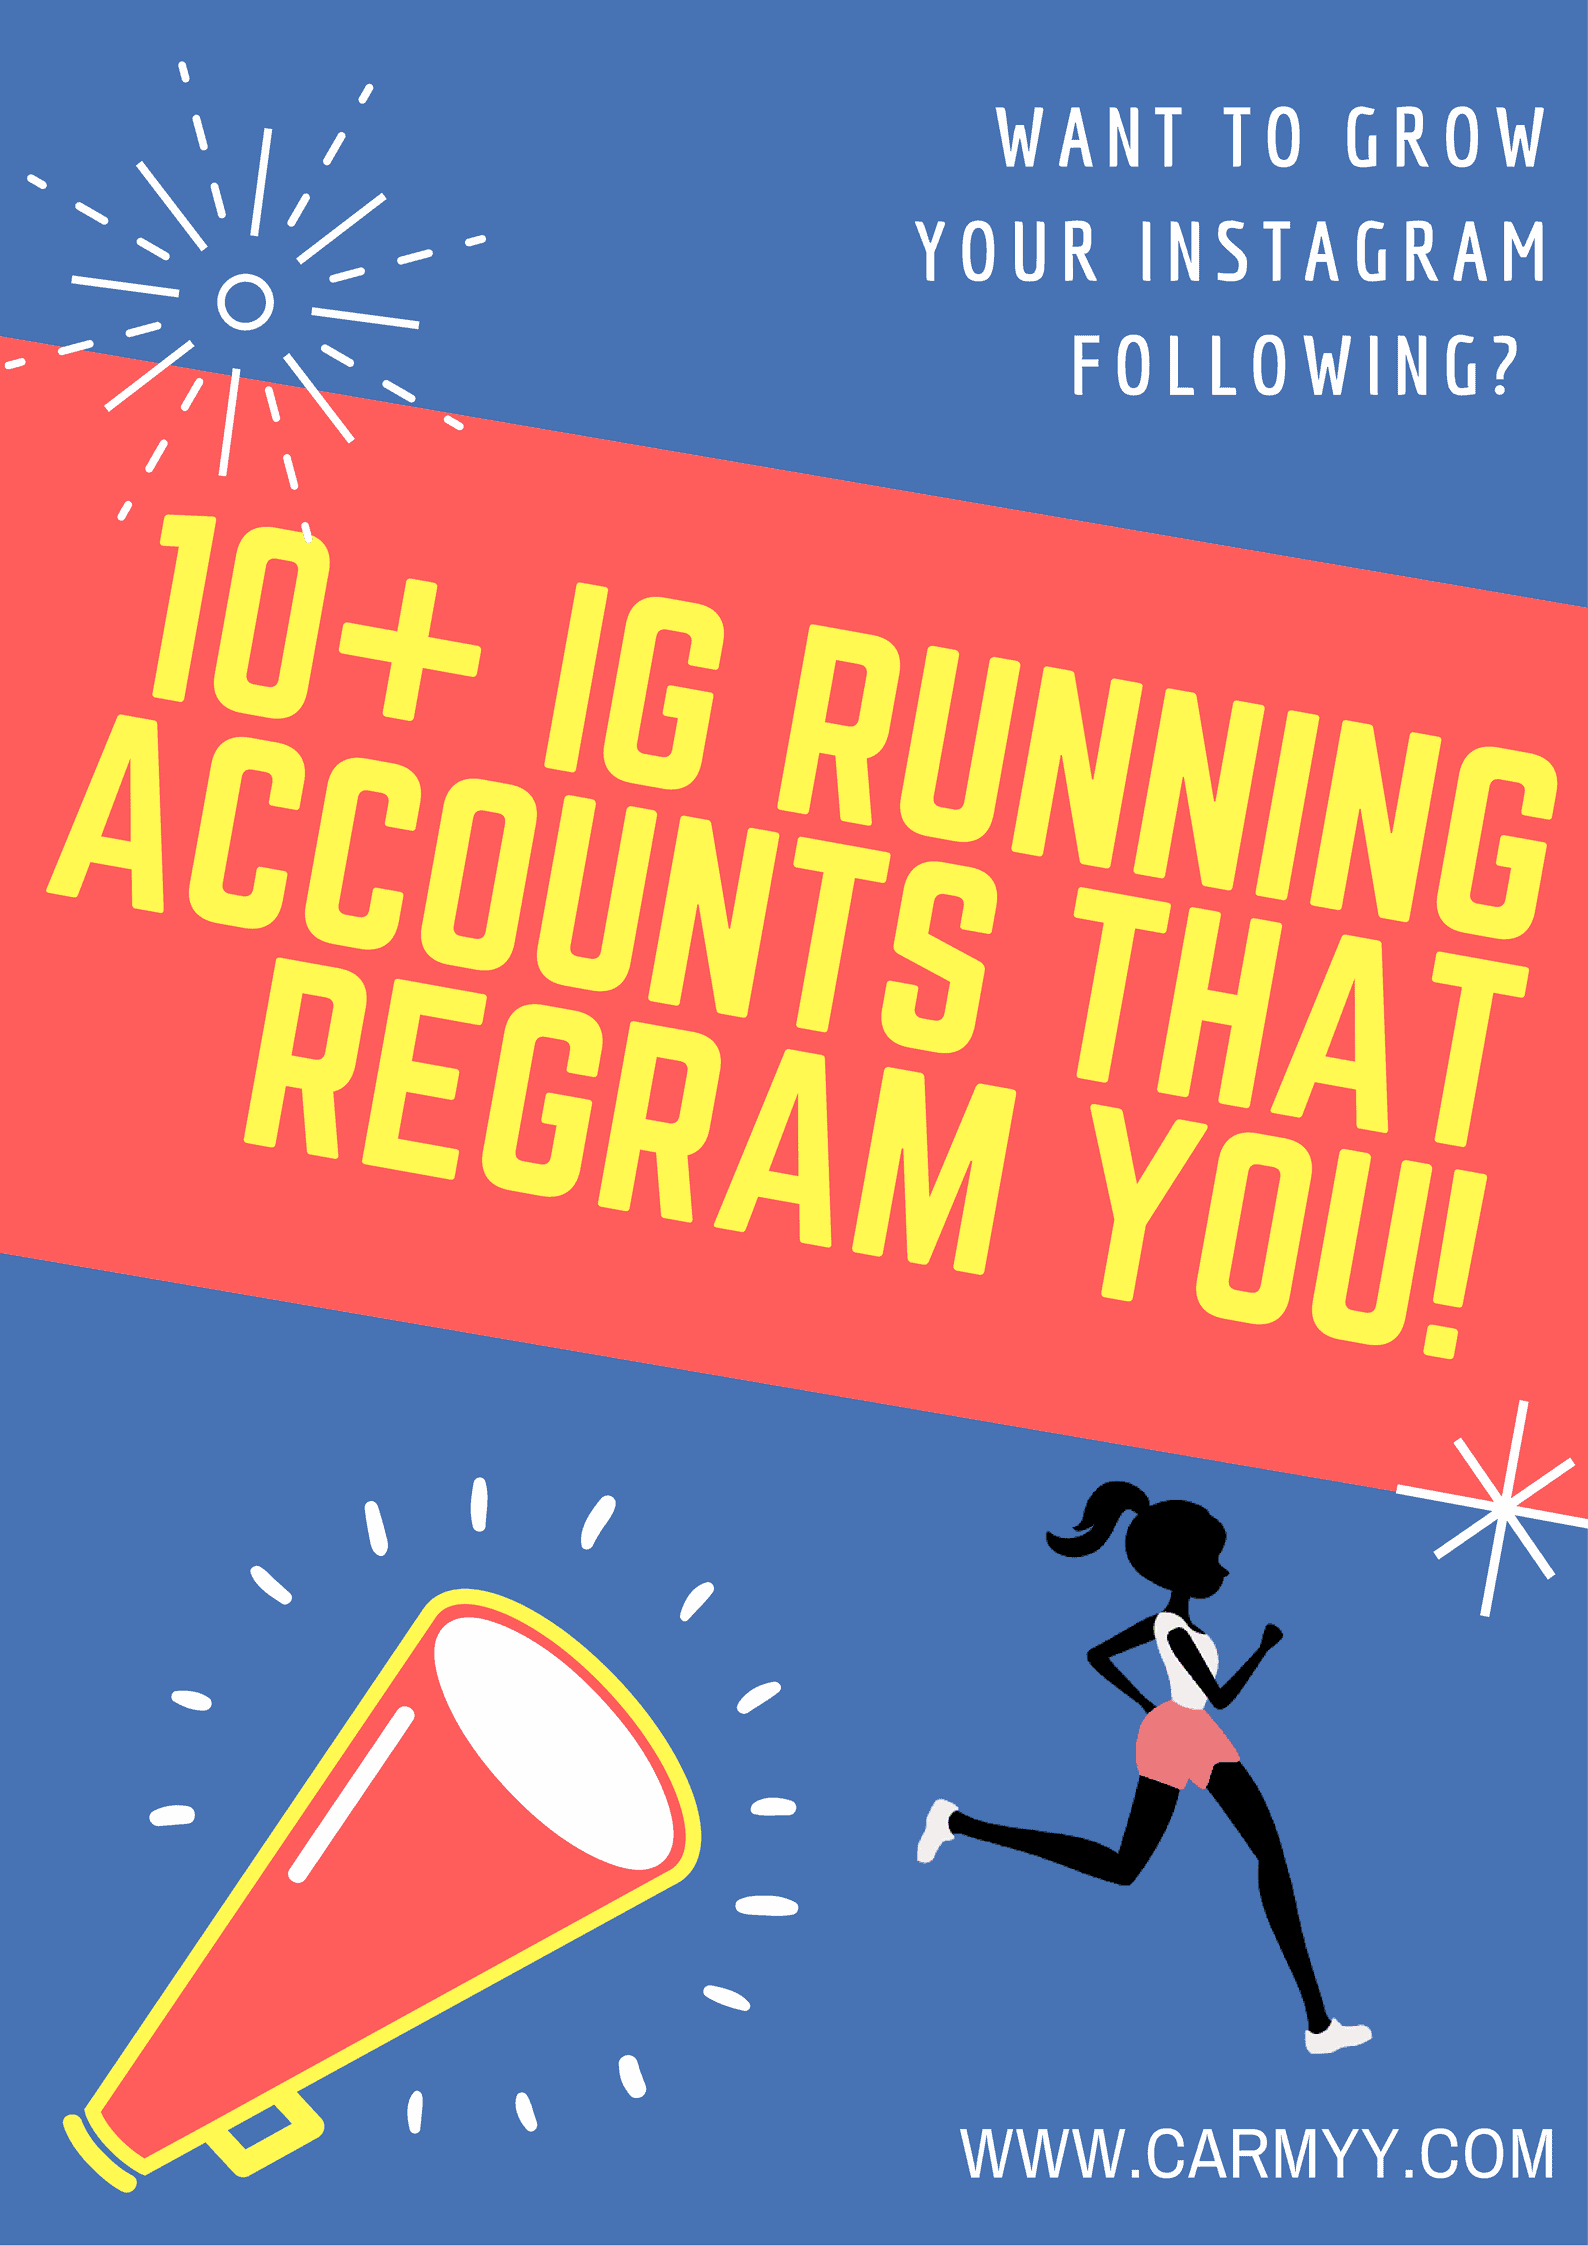 Want to grow your Instagram Following? Here are 10+ IG Running Accounts that Regram You!